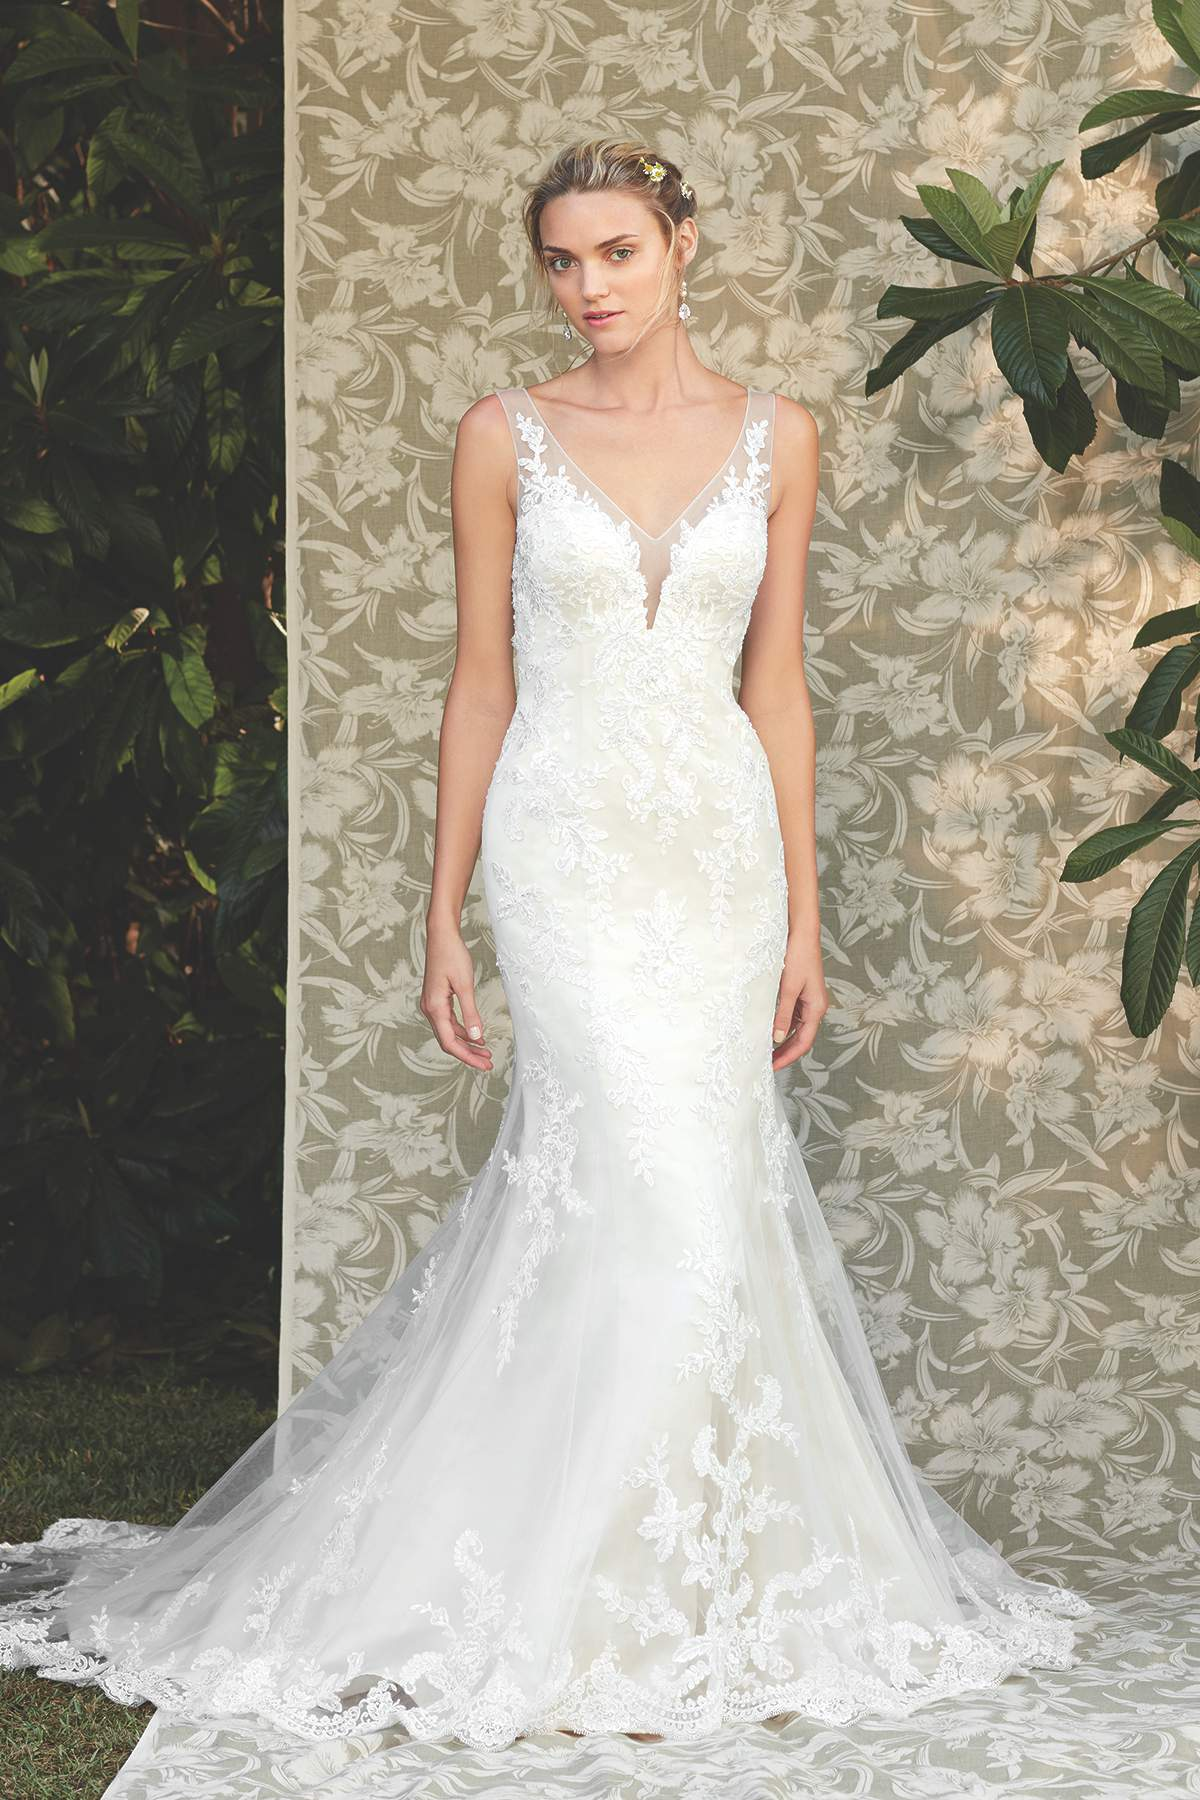 440e260023d8 Ivy by Casablanca Bridal - Find Your Dream Dress